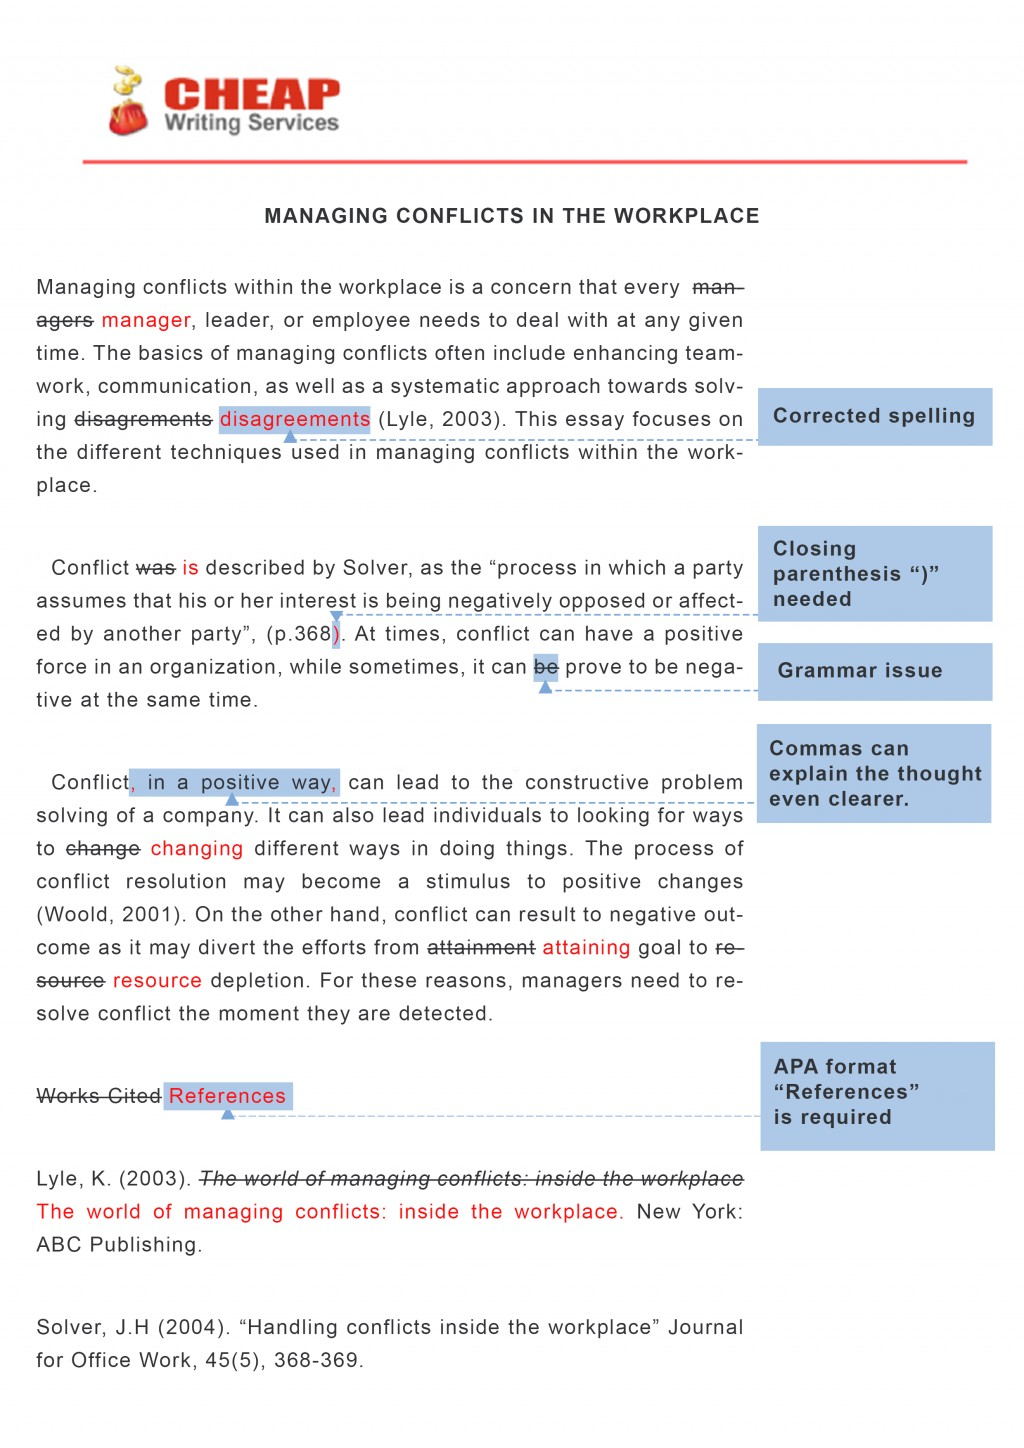 006 Essay Editing Example Stunning Services Writing Canada Plagiarism Large